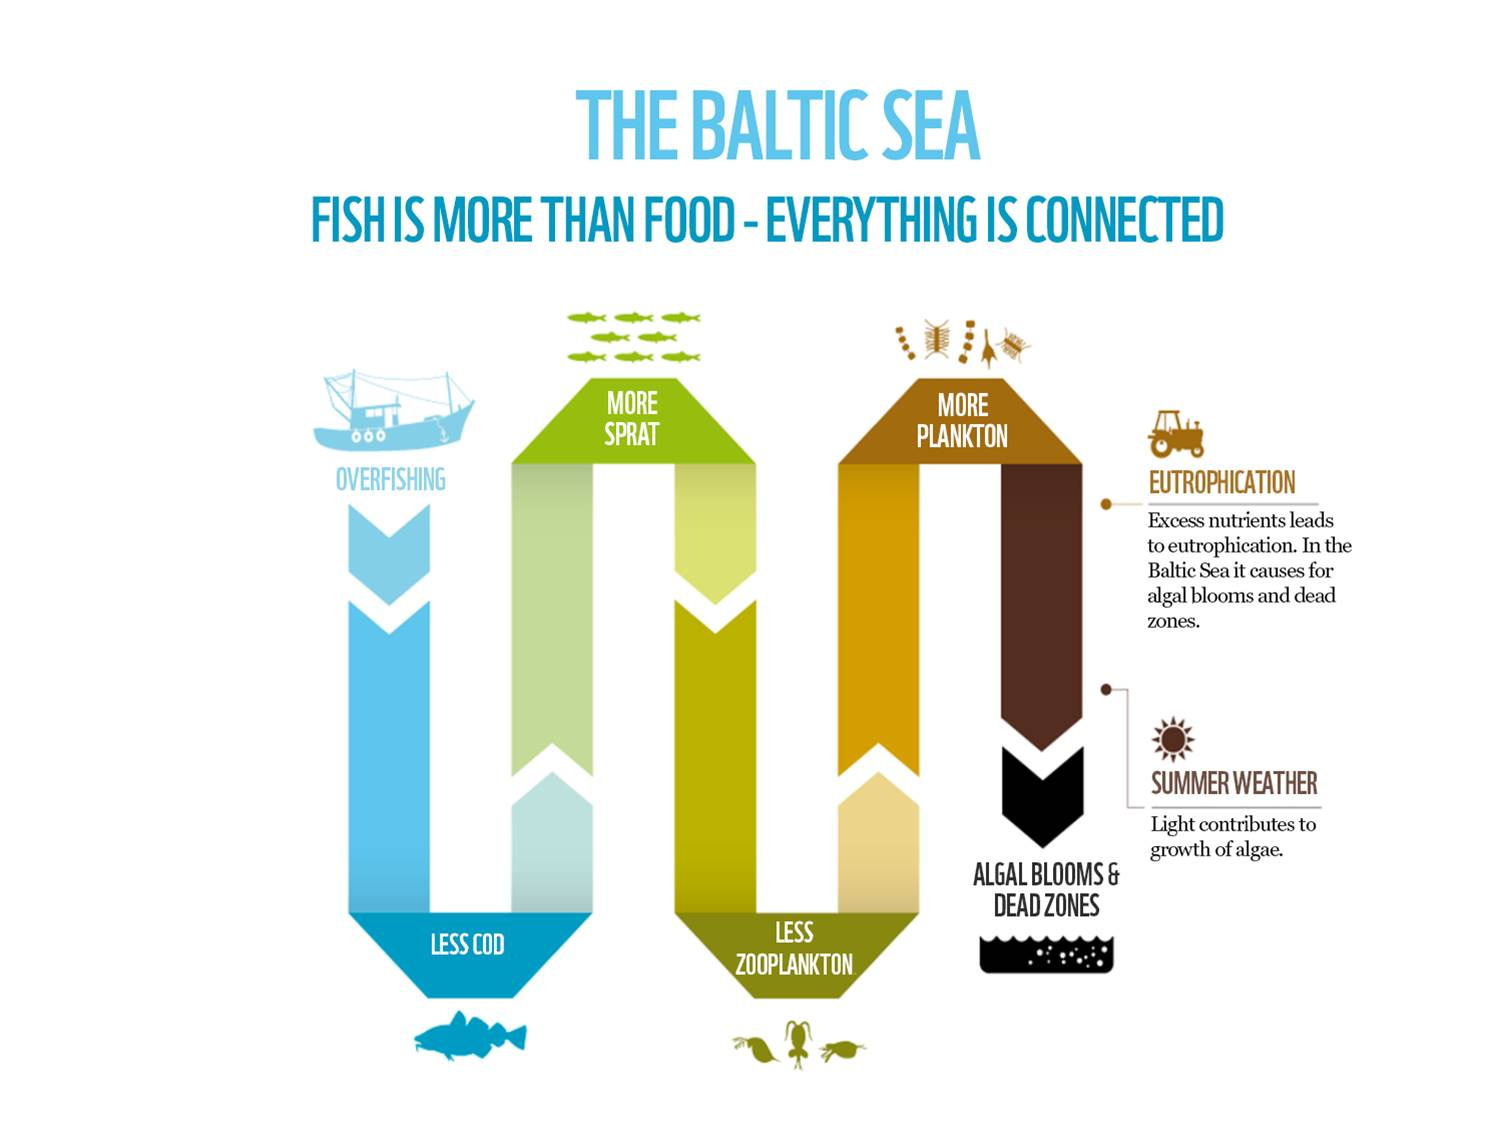 Unsustainable fishing threat to the Baltic Sea